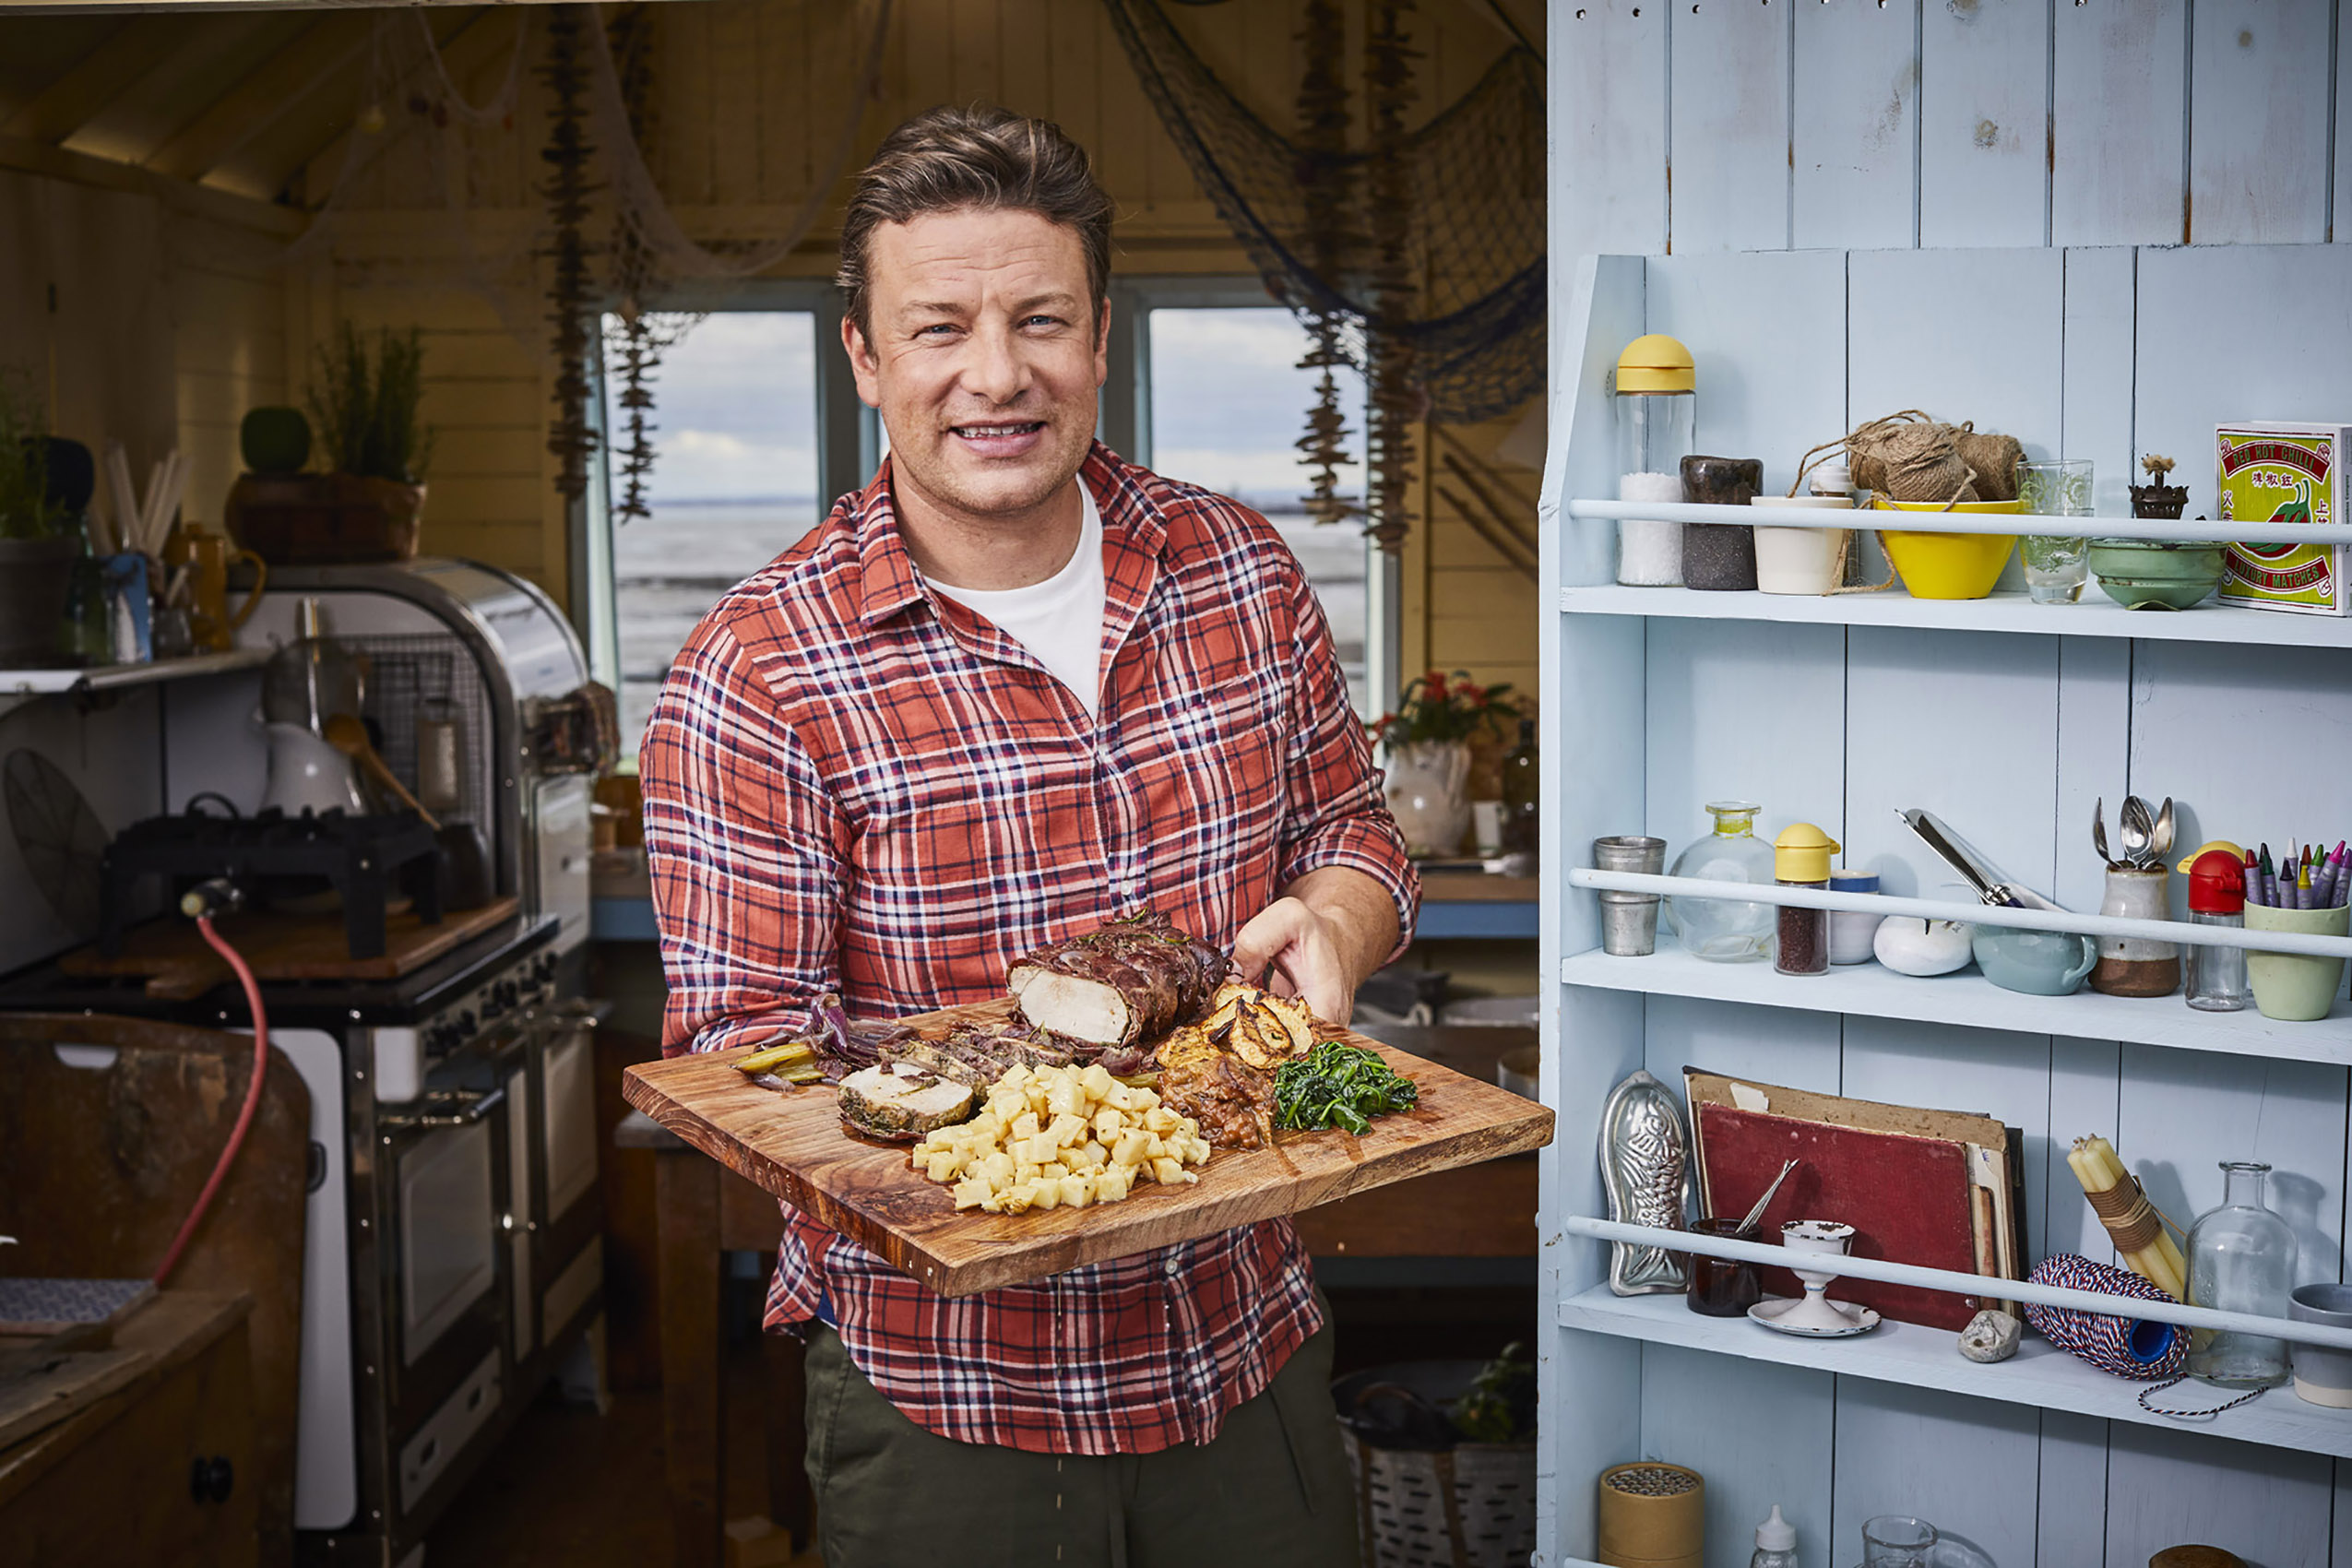 SteveRyan_Photographer_Portraits_People_FridaynightFeast_JamieOliver_85